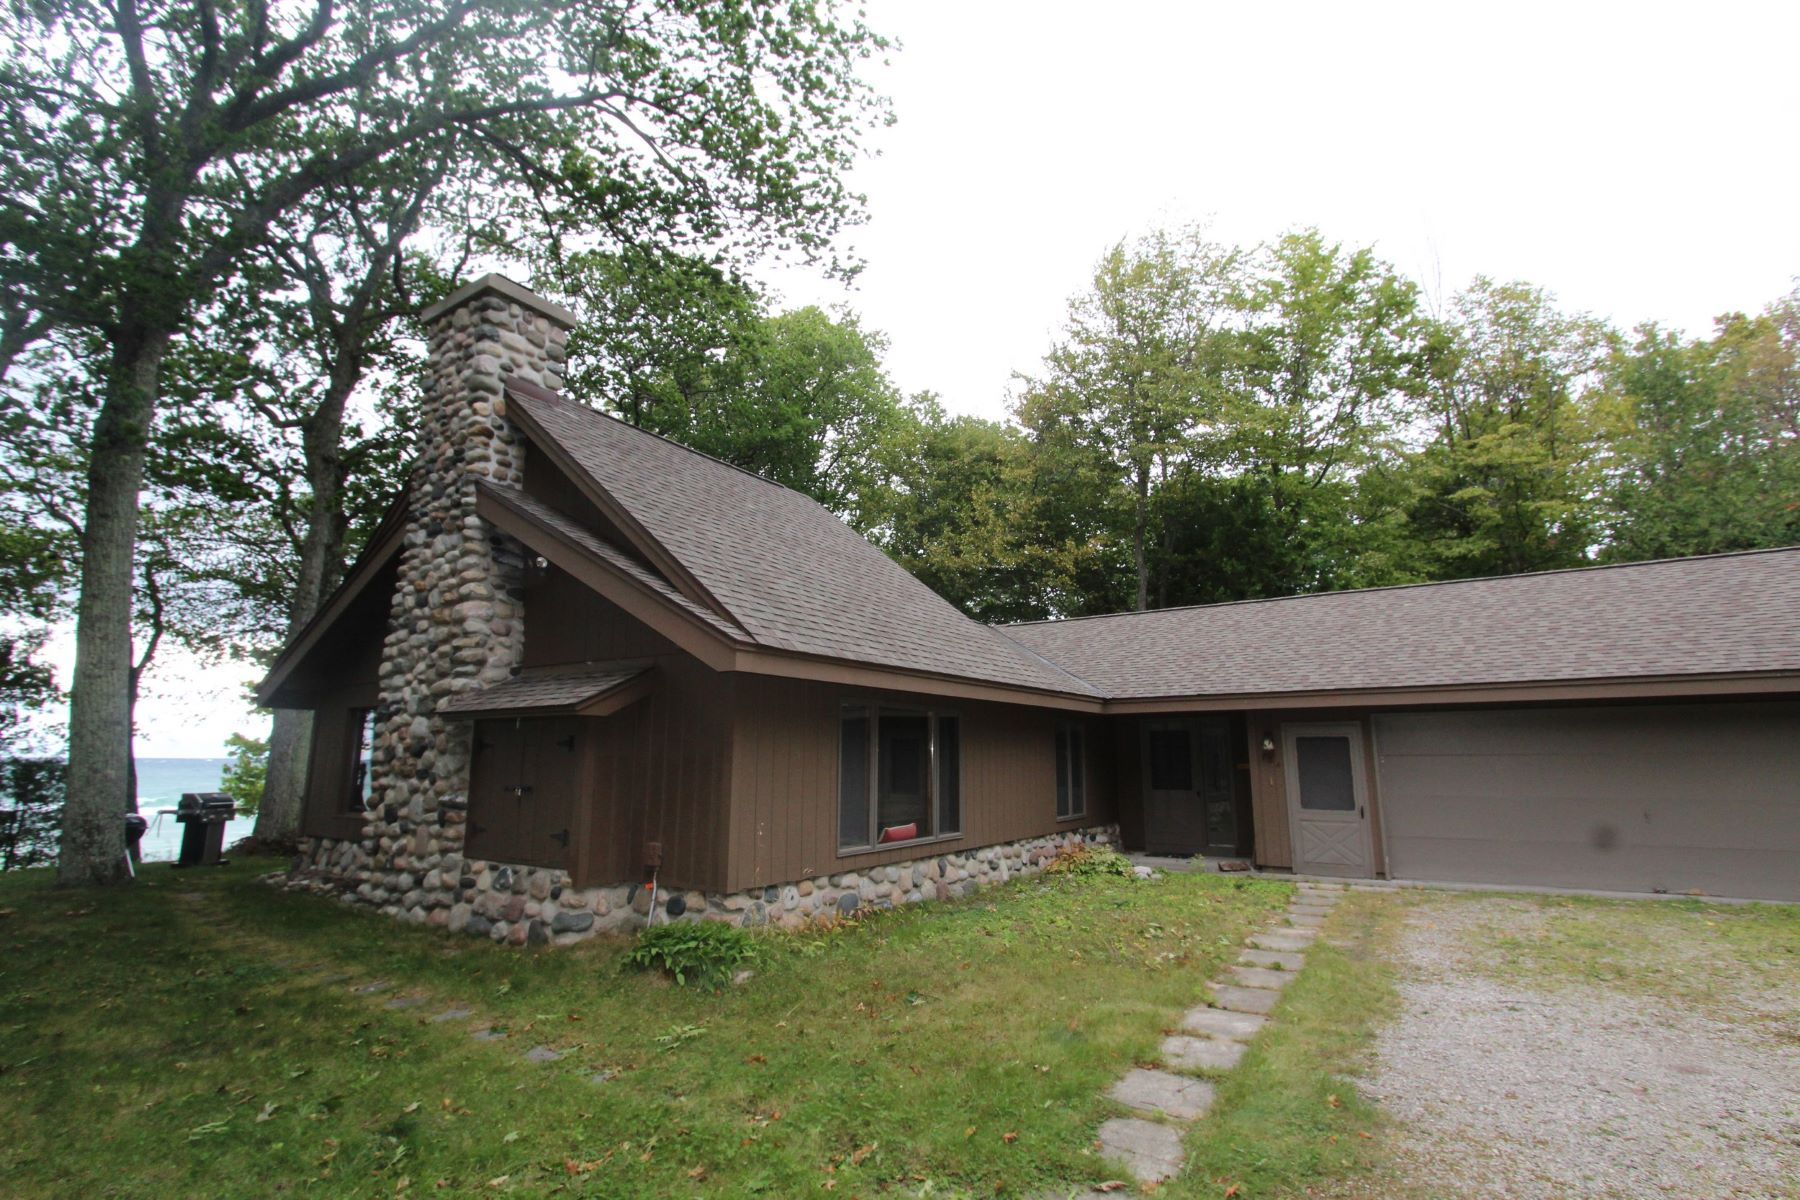 Single Family Homes for Active at 1953 Bliss Cottage with Lake Michigan waterfront 784 S. Lamkin Road Harbor Springs, Michigan 49740 United States